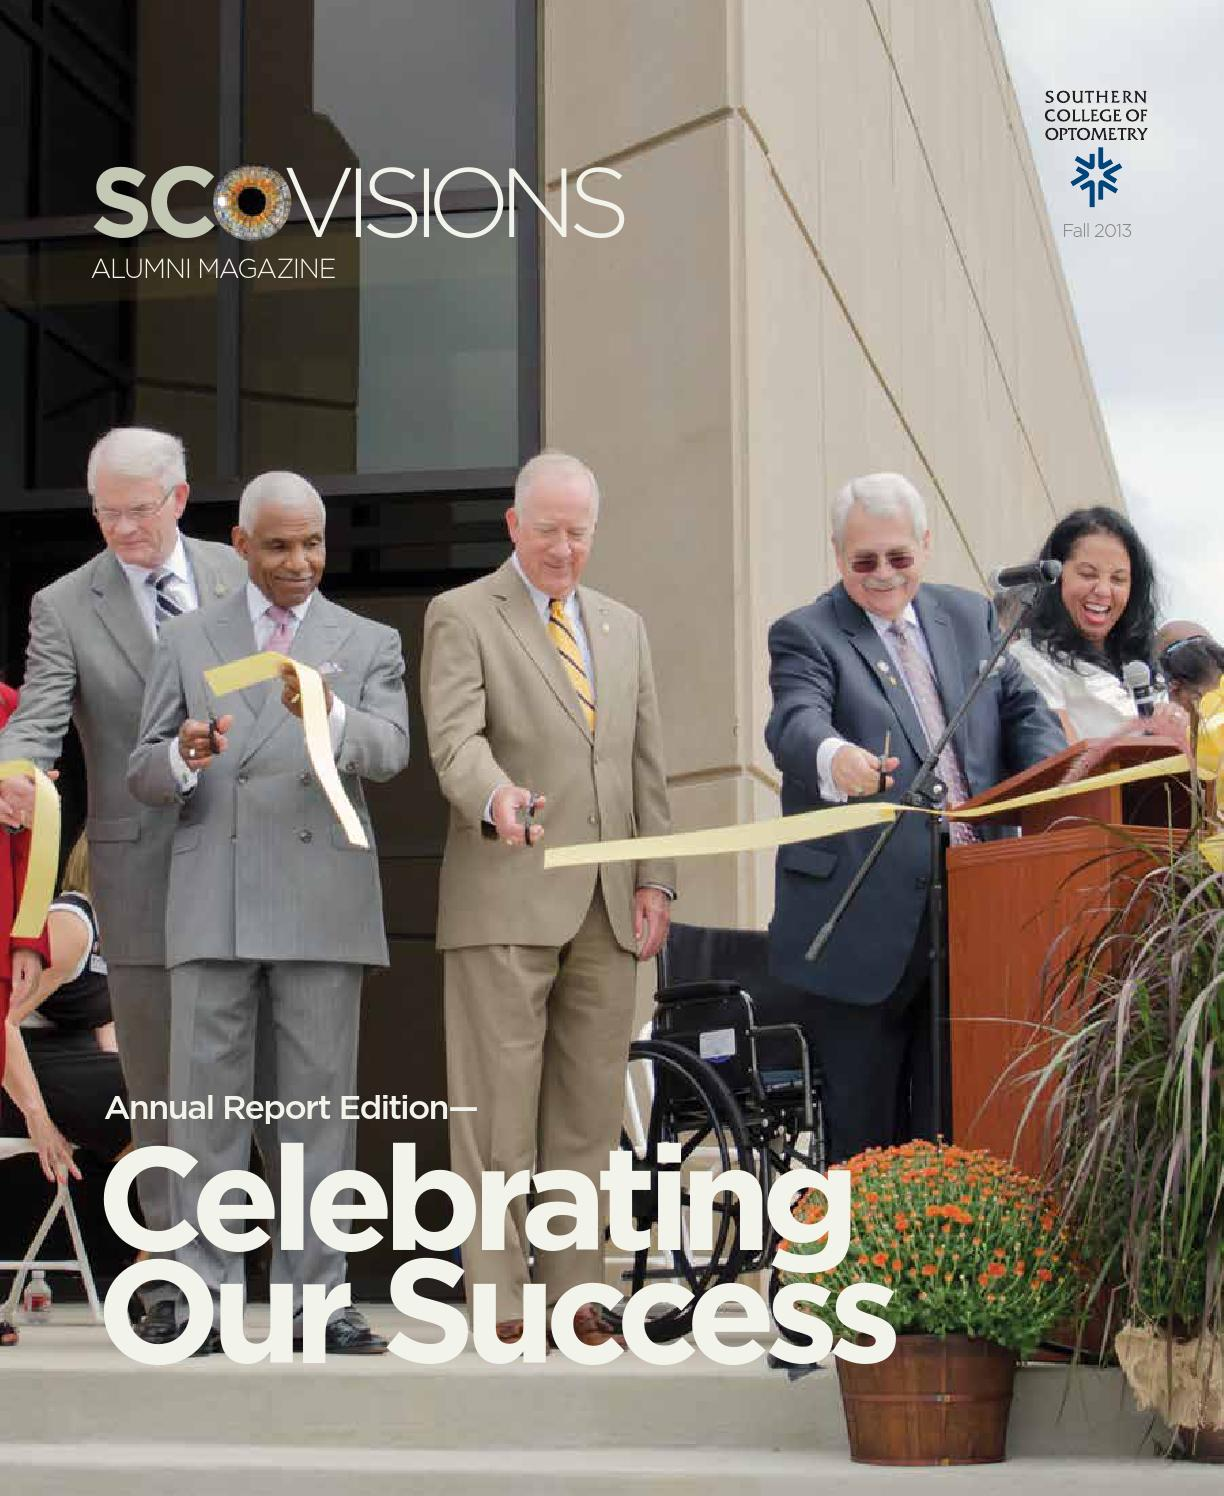 visions alumni magazine - fall 2013 - southern college of